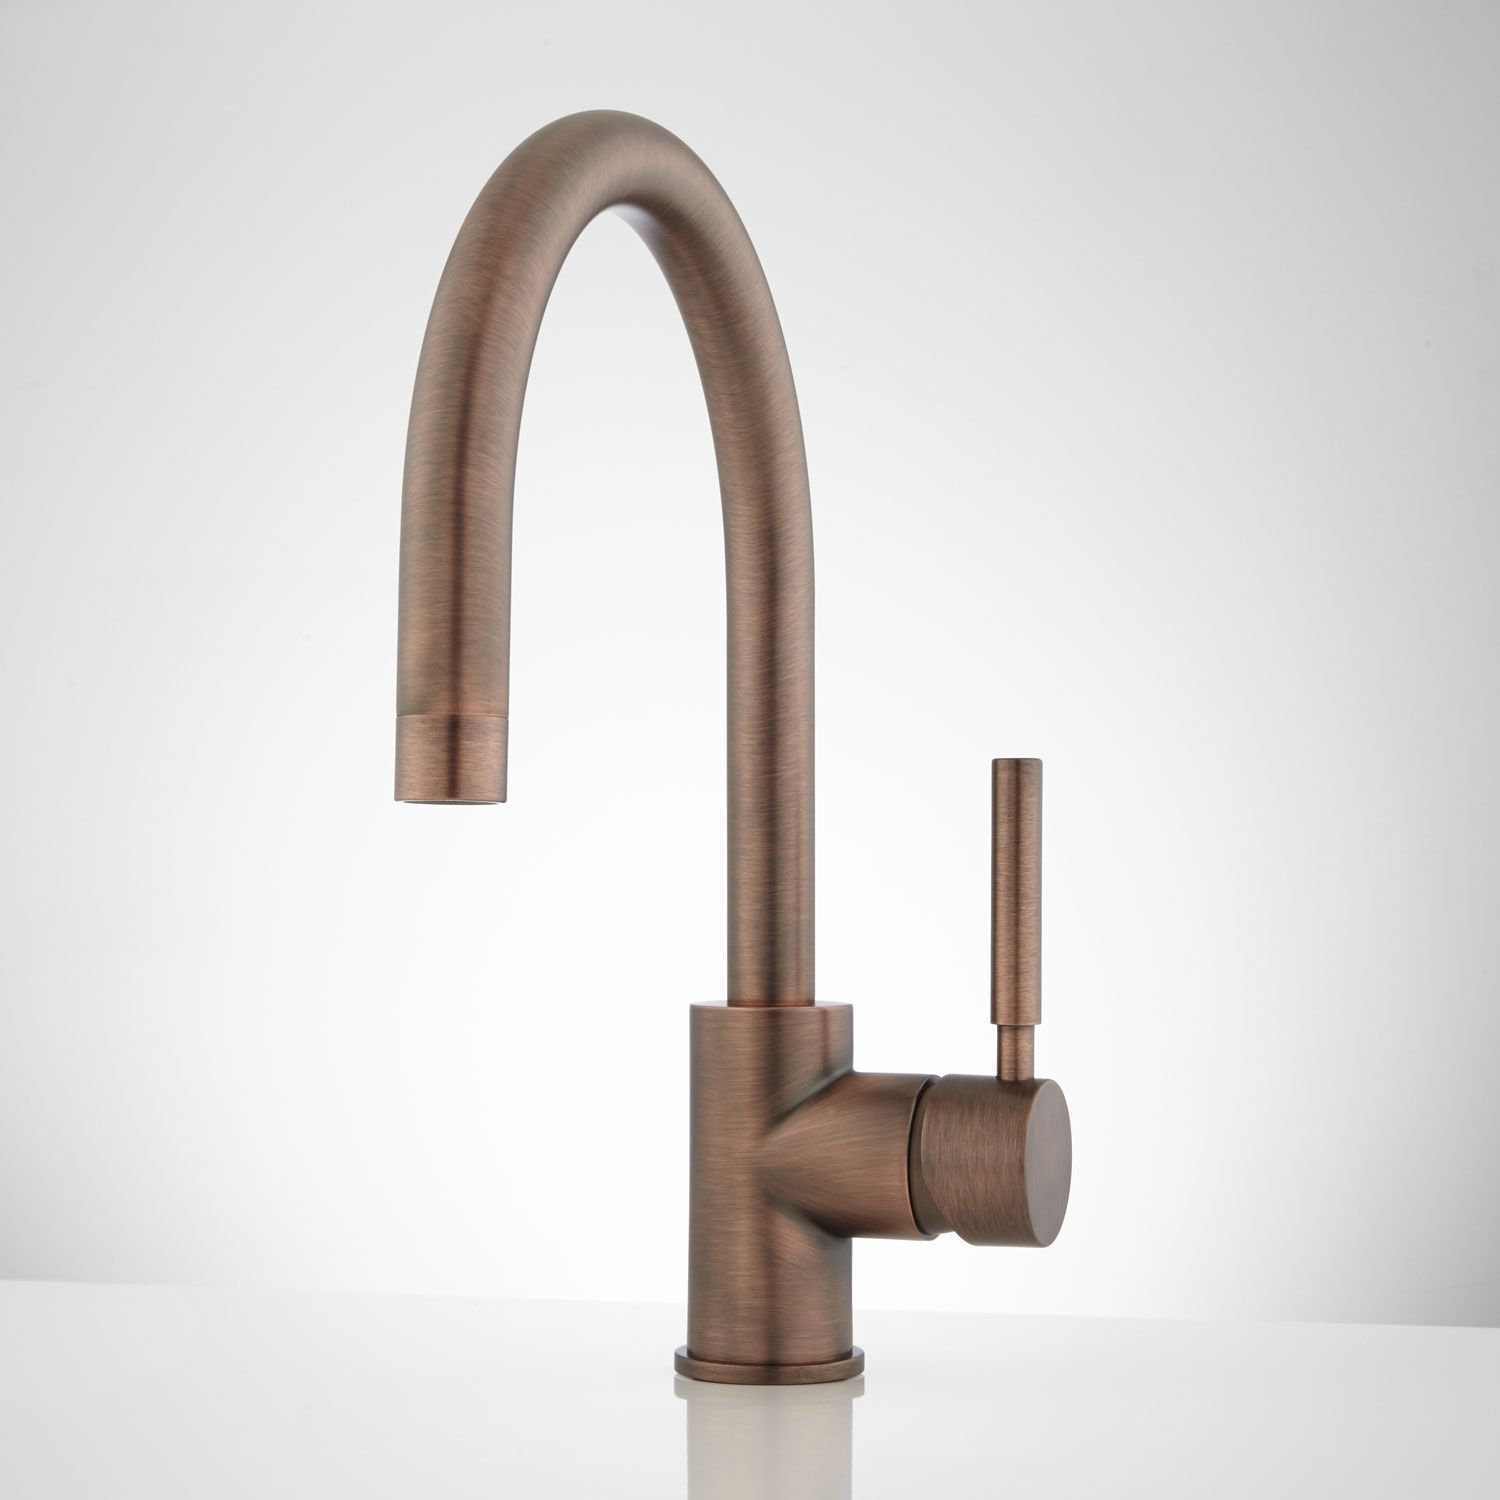 Casimir Singlehole Bathroom Faucet  Popup Drain  No Overflow Beauteous Oil Rubbed Bronze Bathroom Faucet Design Ideas